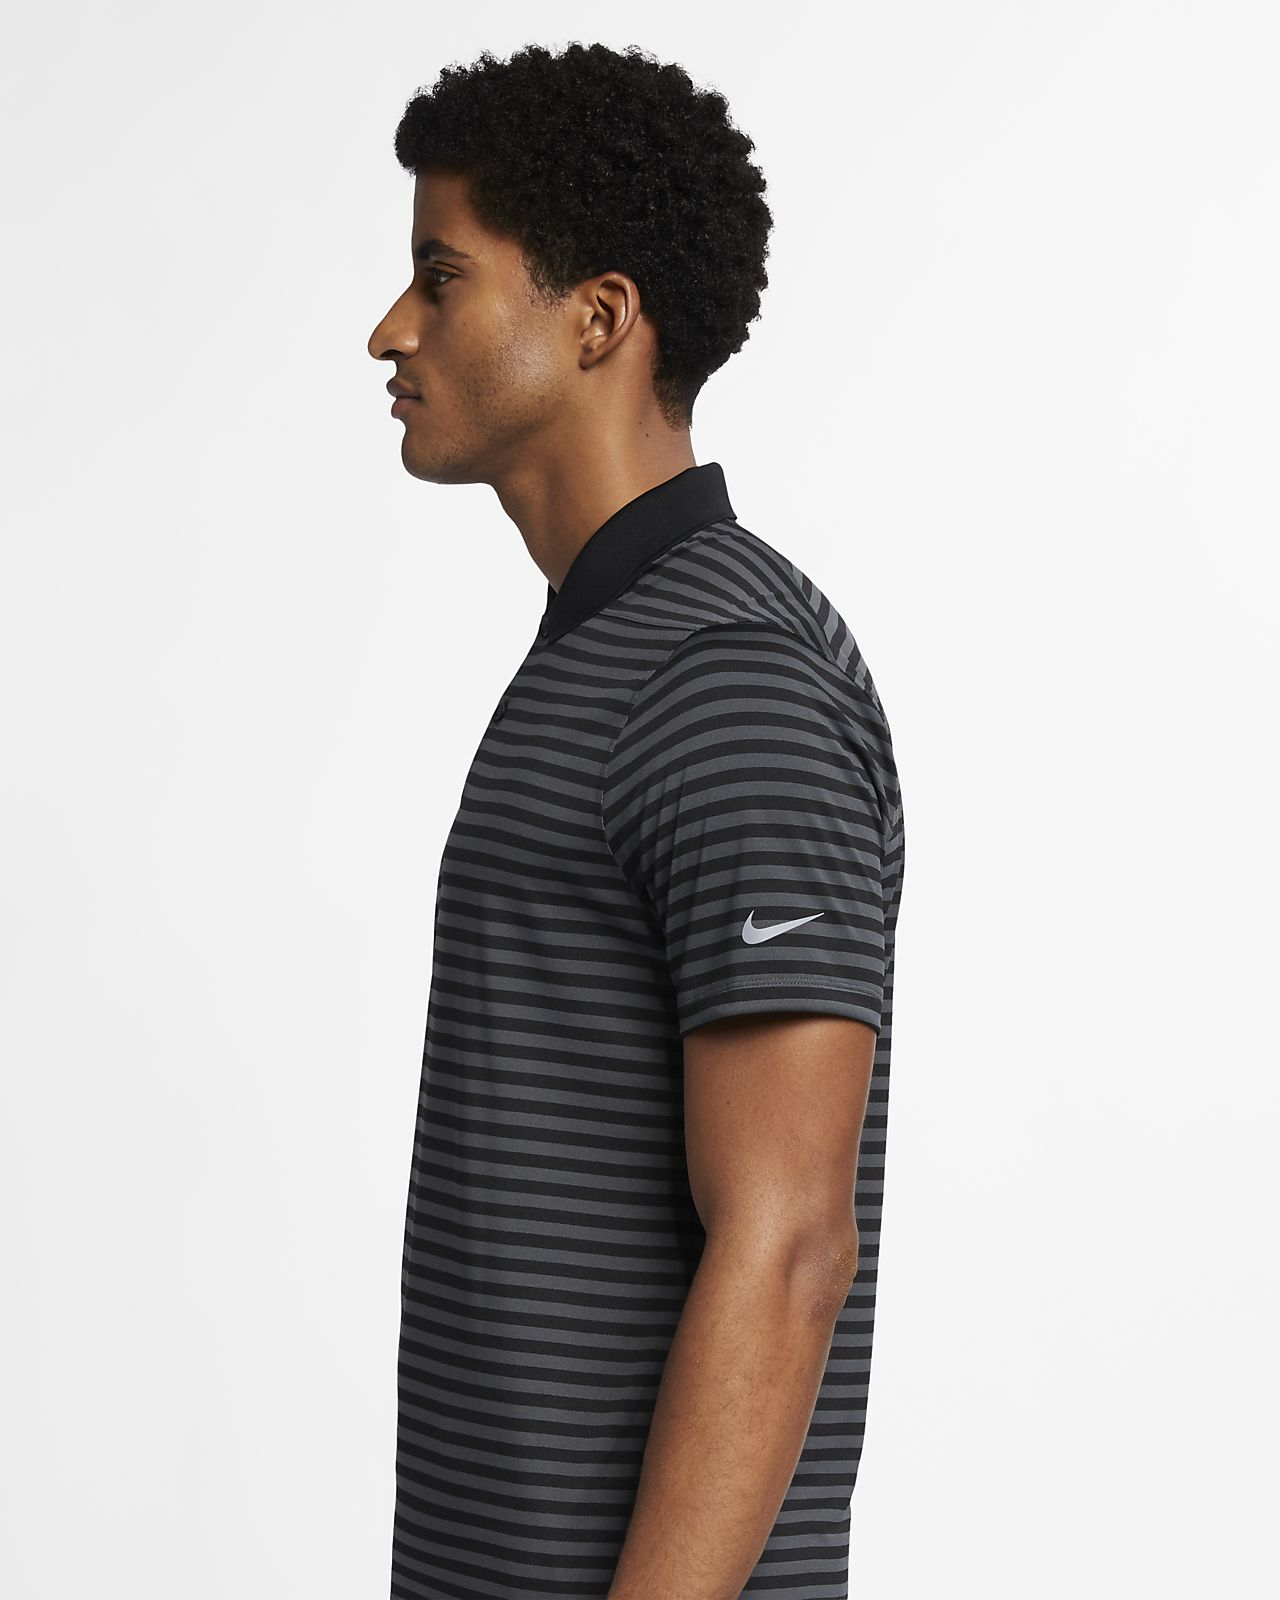 ea71d022 Nike Dri-FIT Victory Men's Striped Golf Polo. Nike.com GB